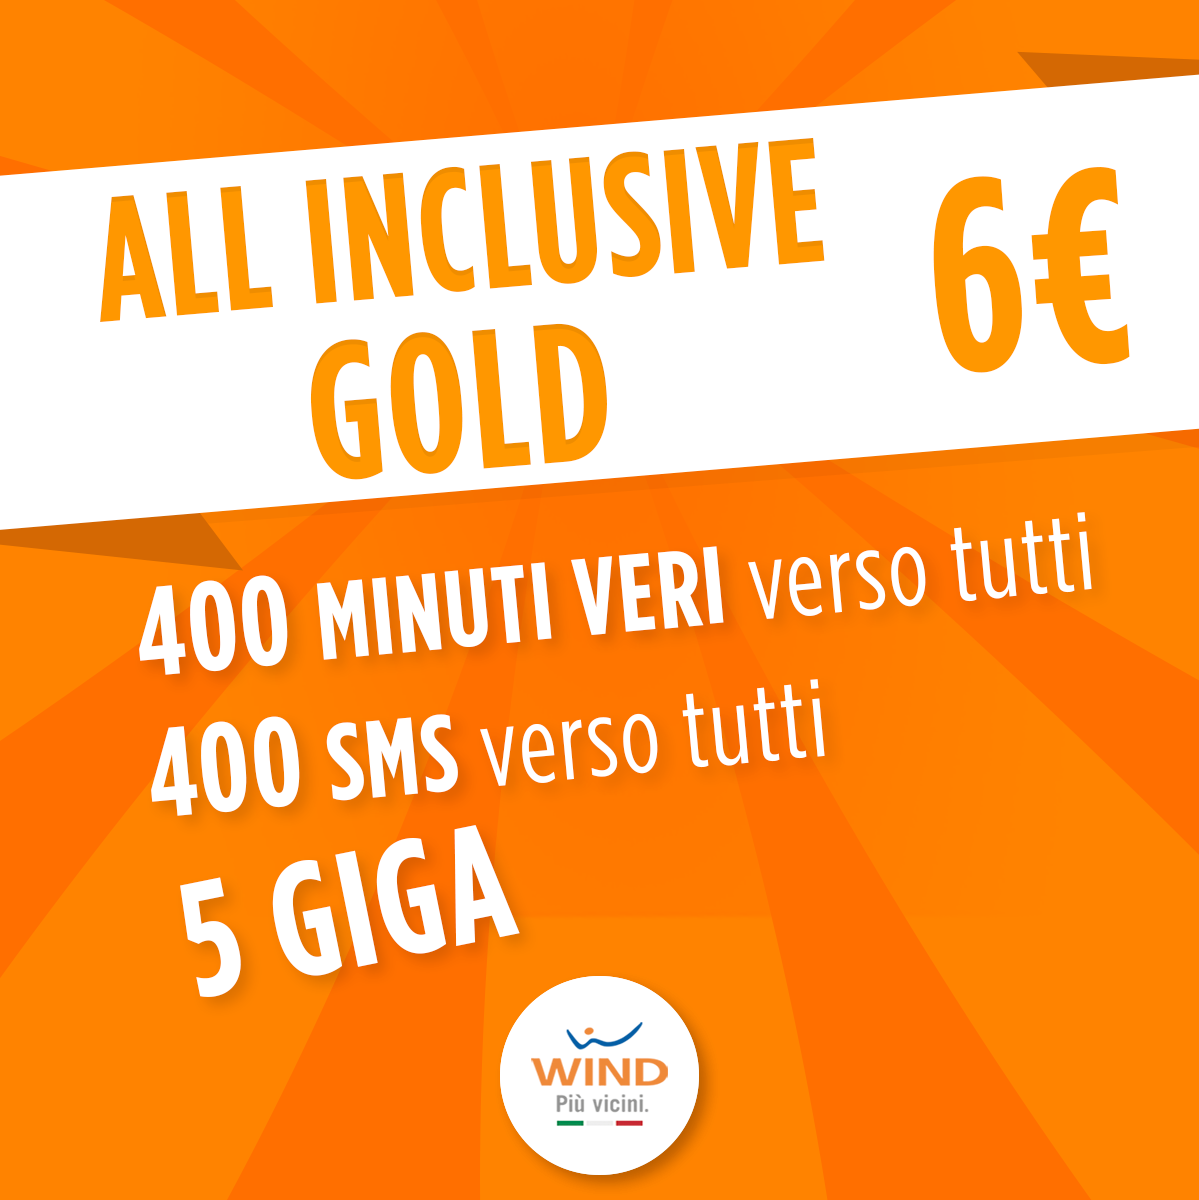 wind all inclusive-gold 1